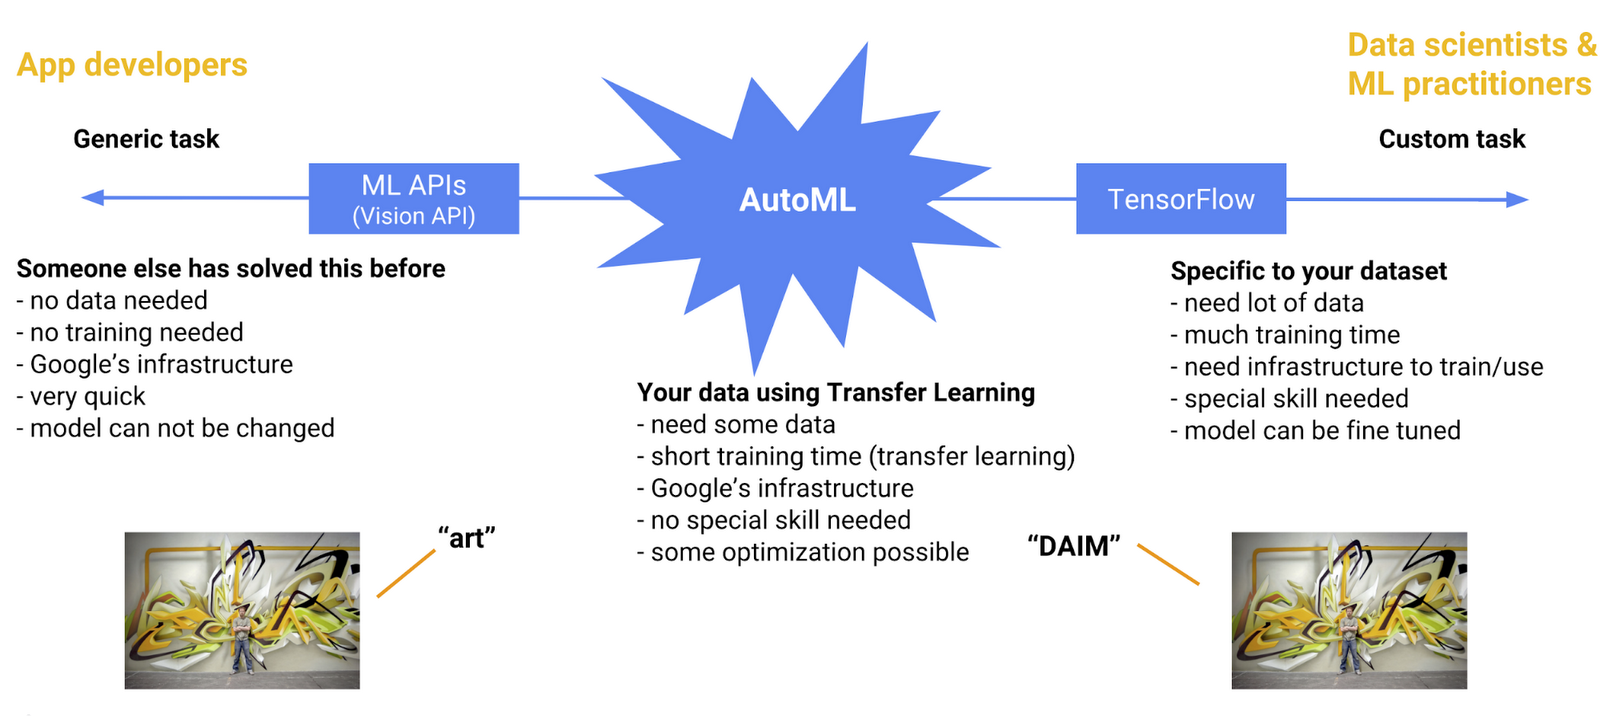 AutoML is situated in between Vision APIs and custom TensorFlow models